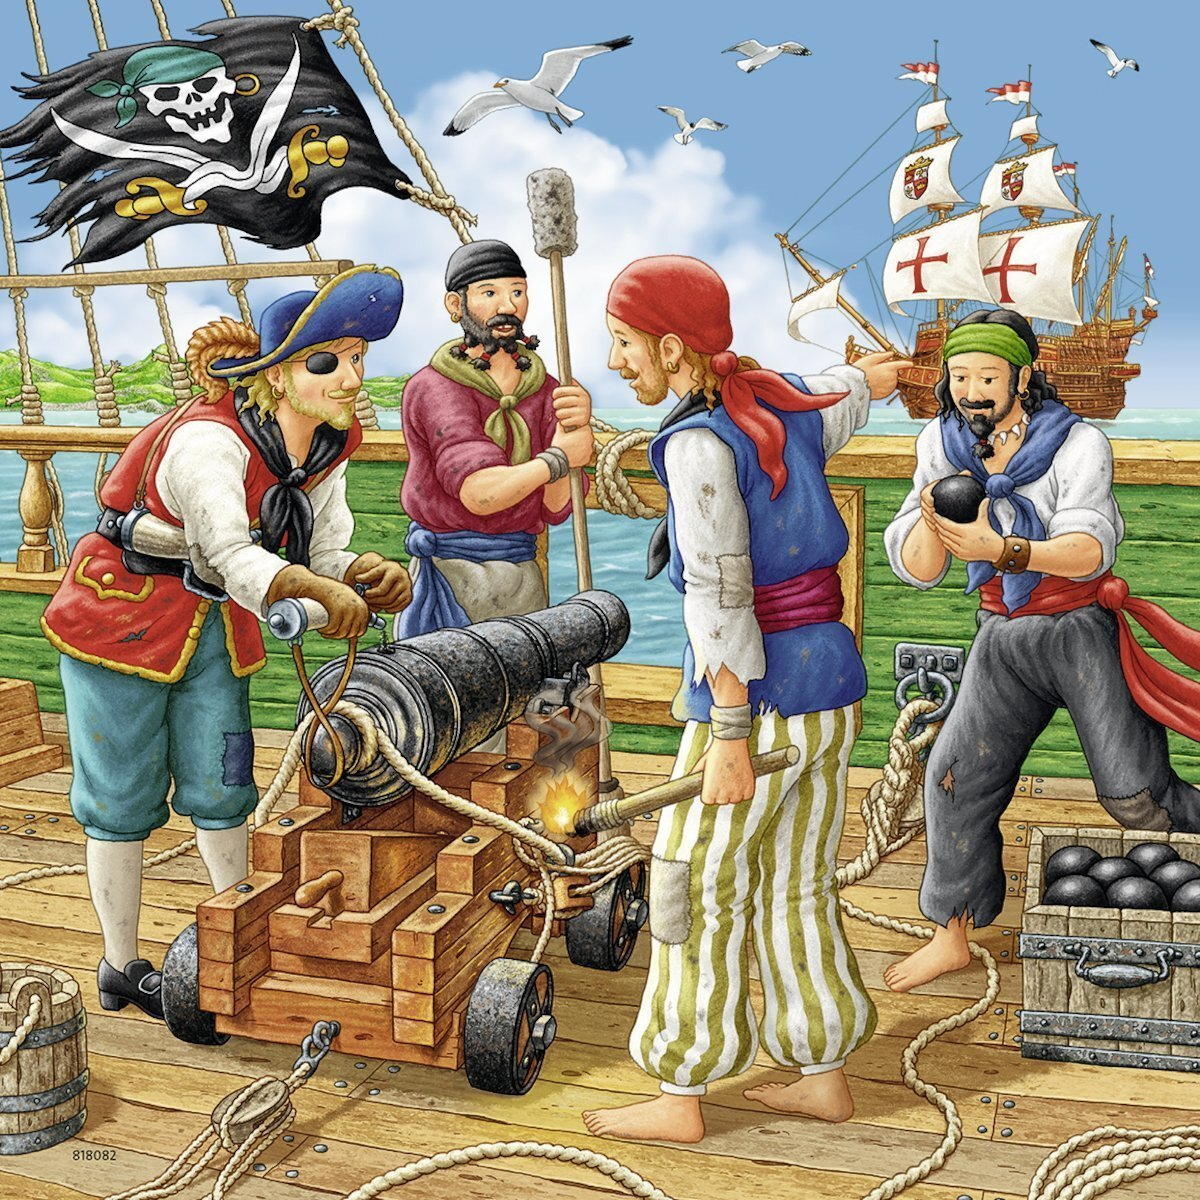 Ravensburger Adventure on the High Seas Puzzle Box